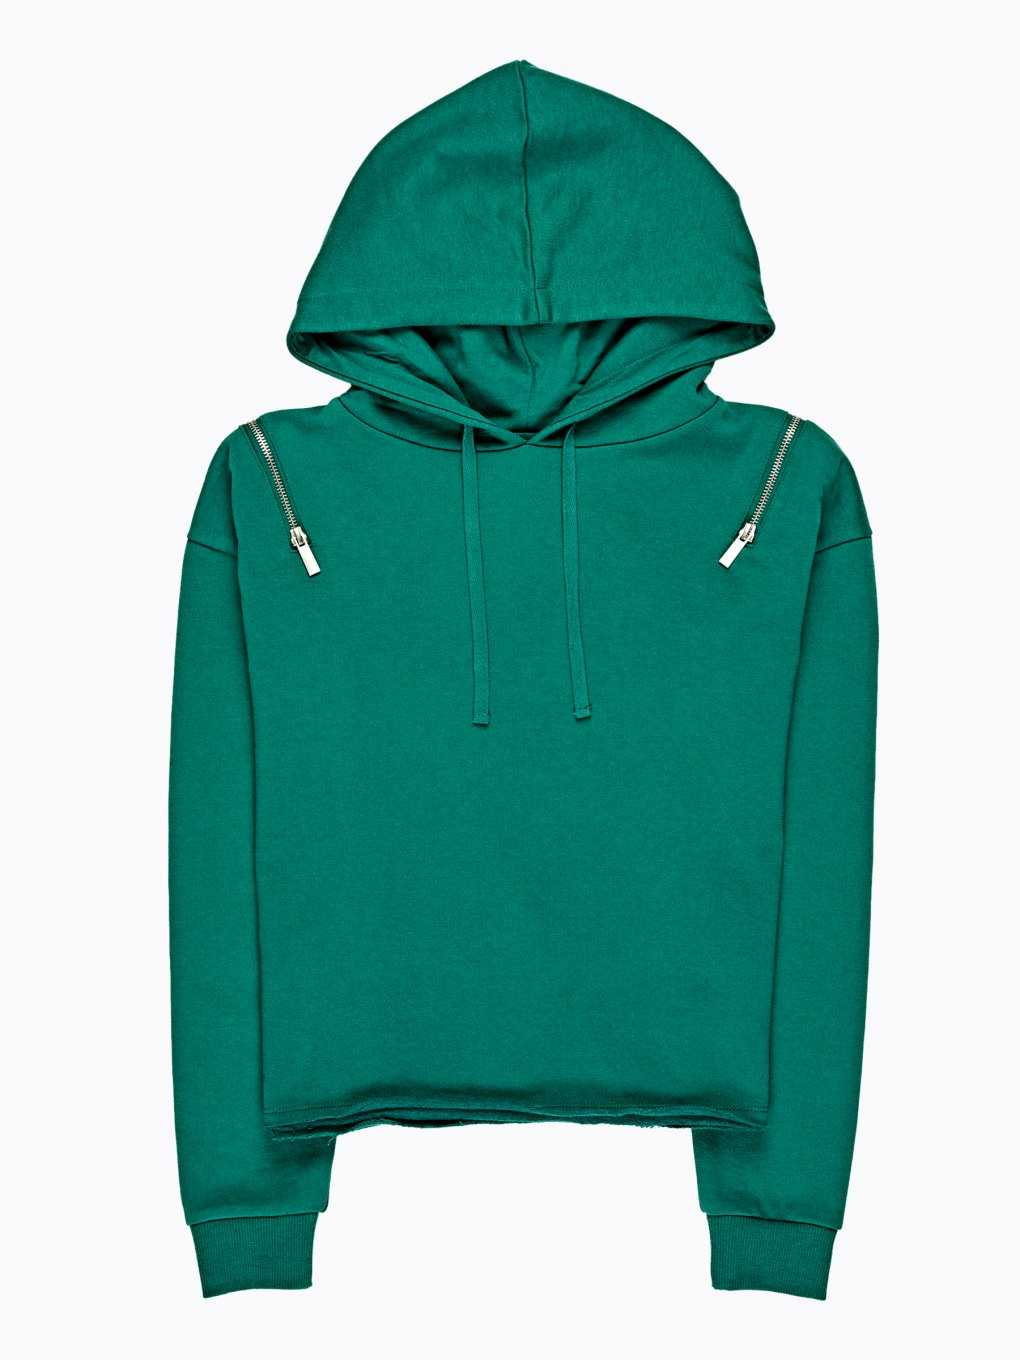 Hoodie with zippers